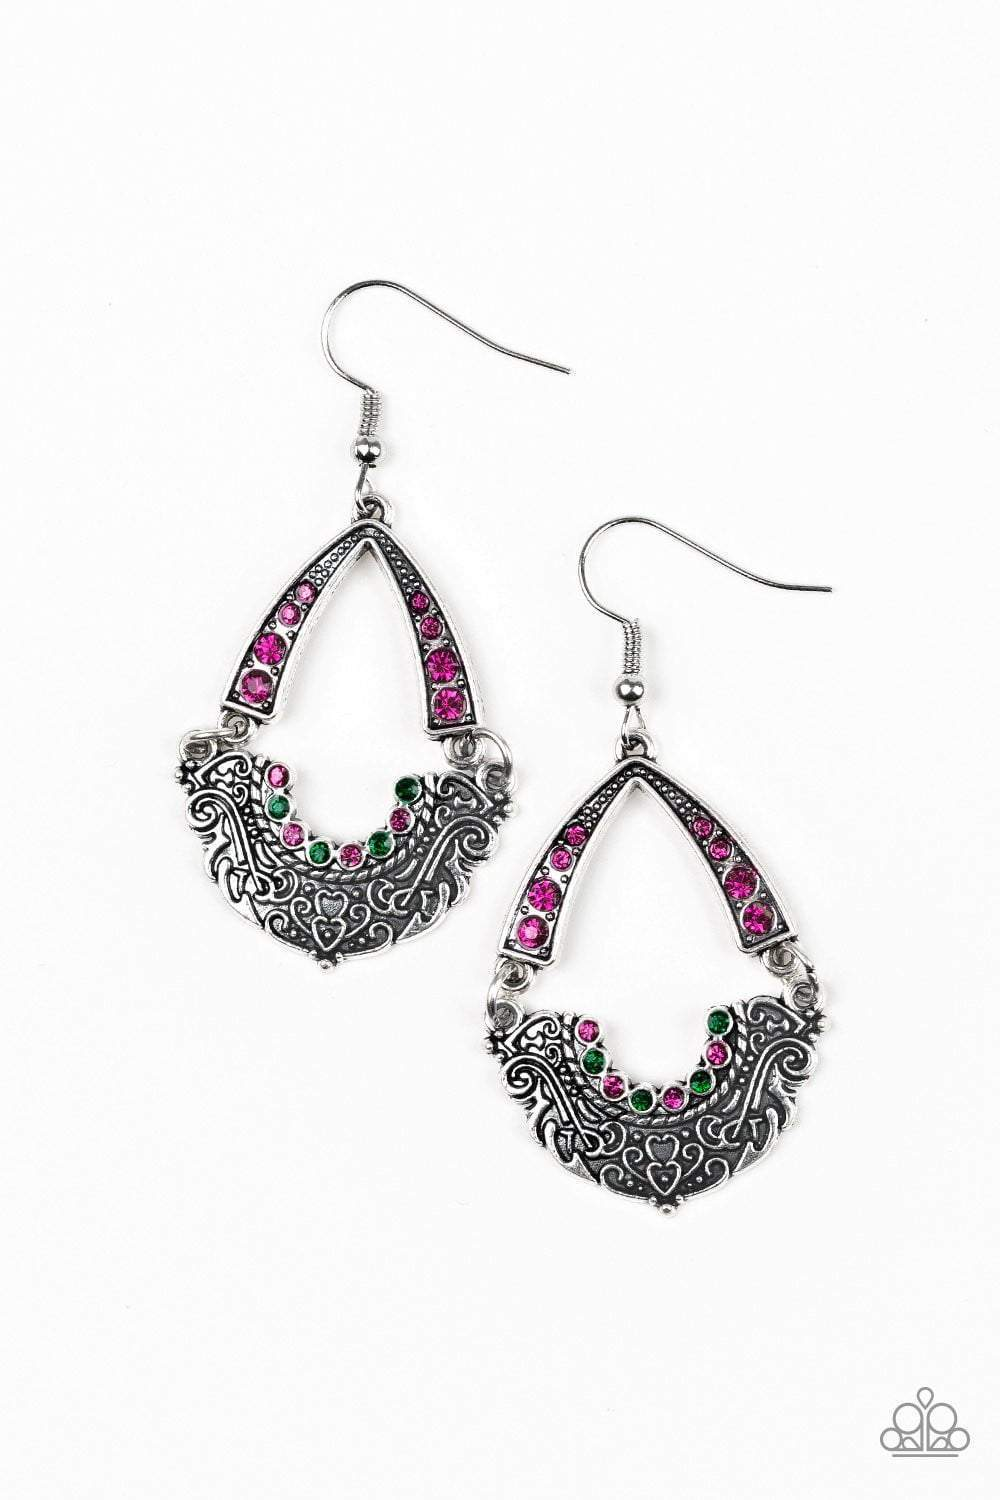 Paparazzi Royal Engagement - Multi Green Pink Rhinestone Silver Ornate Filigree Earrings - Bling It On Online